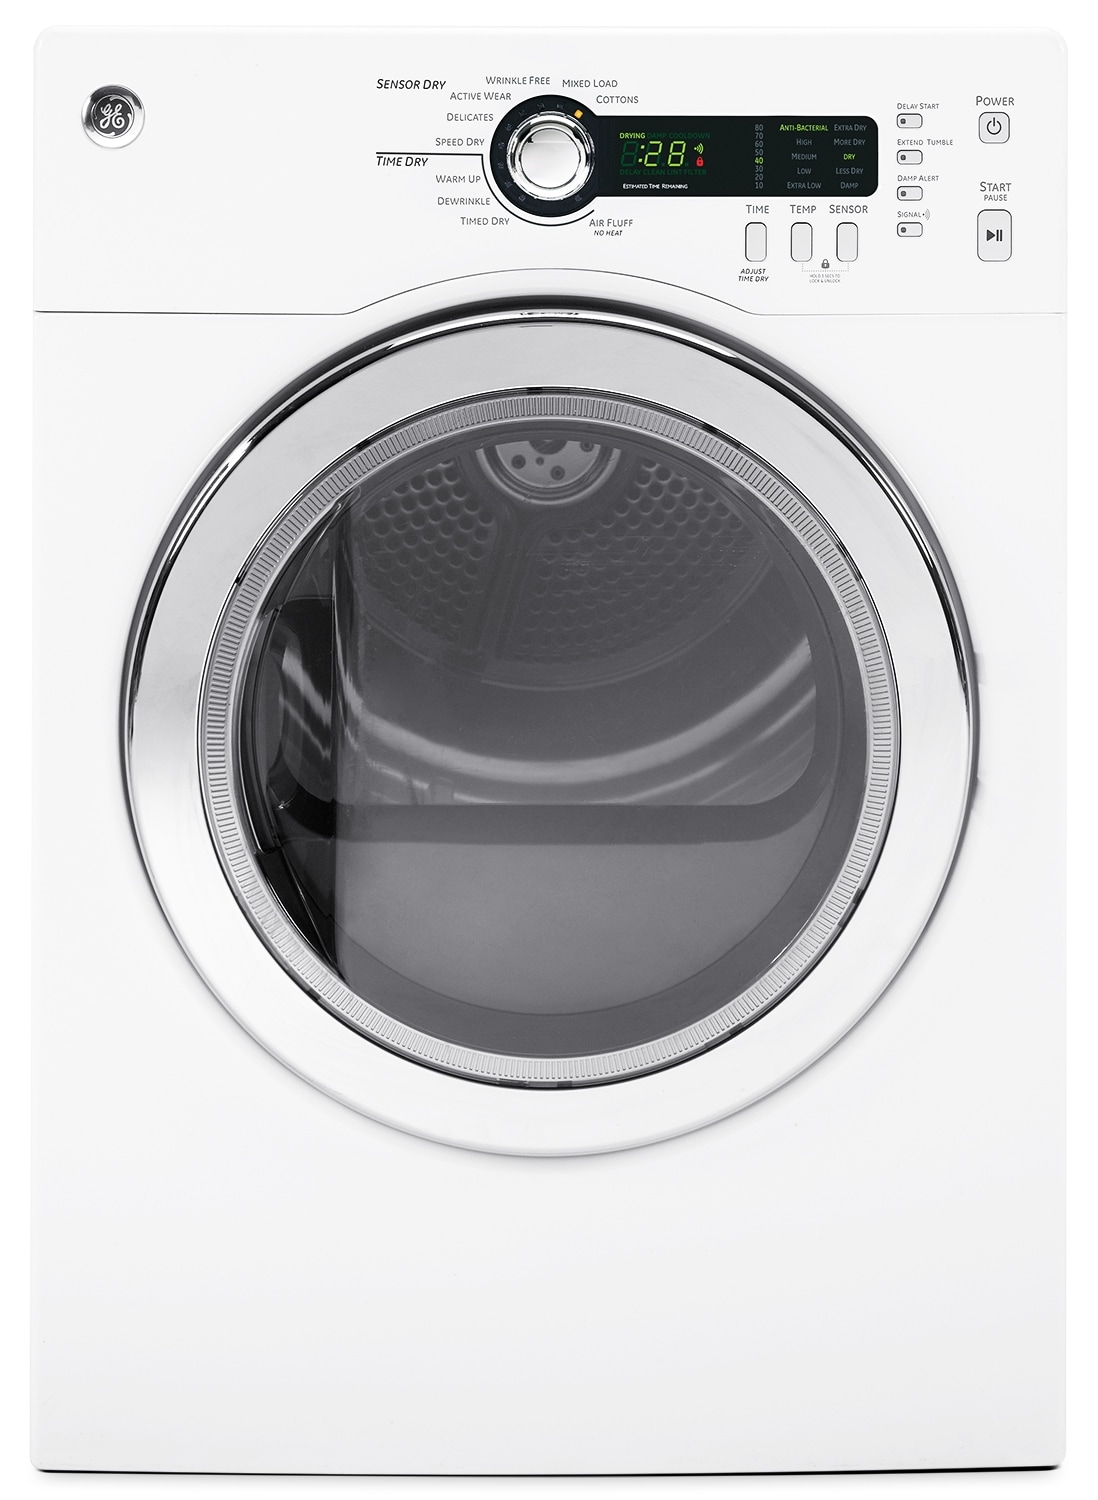 Washers and Dryers - GE White Electric Dryer (4.0 Cu. Ft.) - PCVH480EKWW